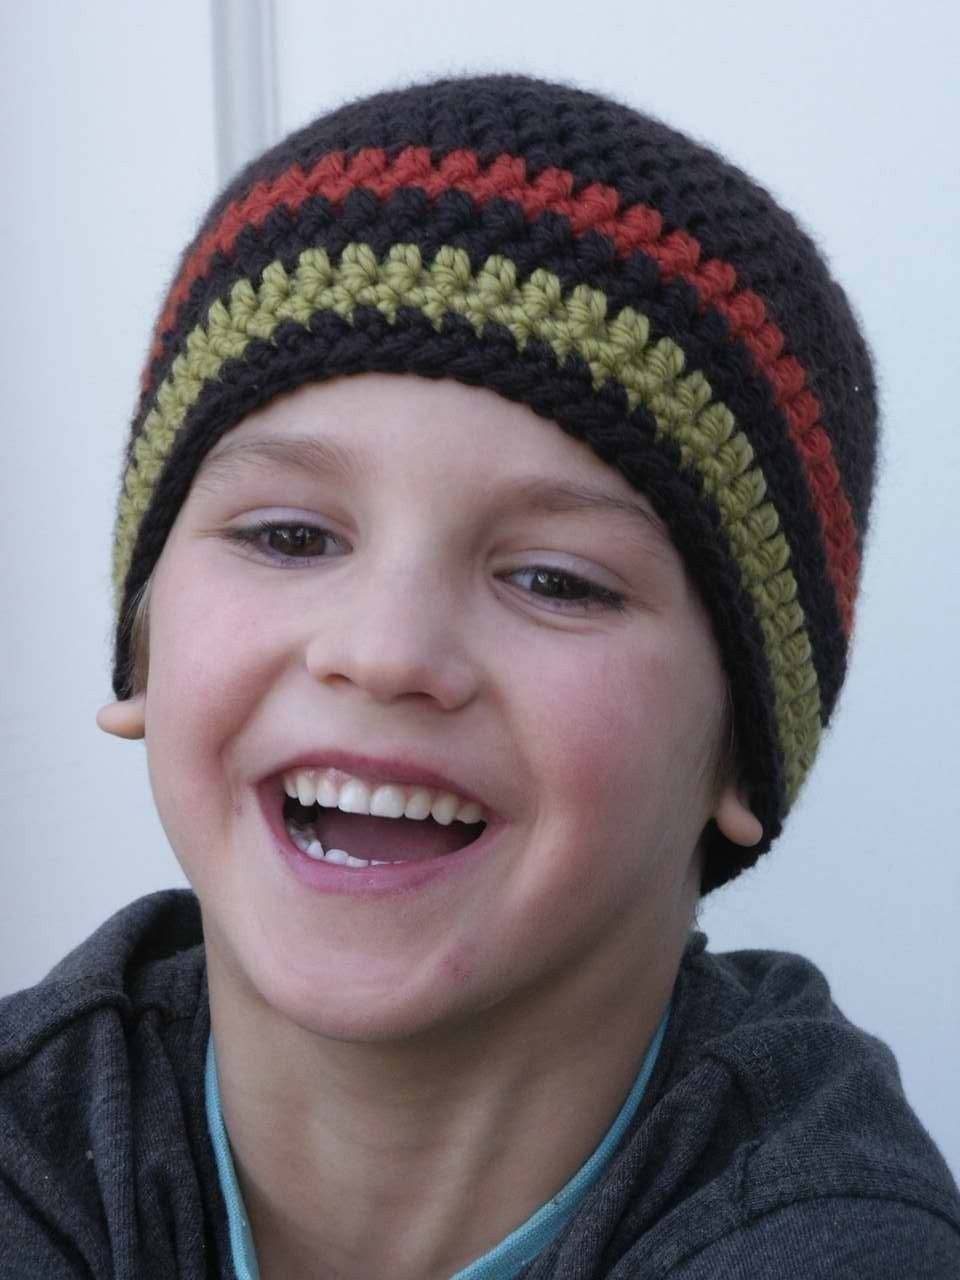 Crochet boys hat crochet hat patterns for boys free easy crochet boys hat crochet hat patterns for boys free easy crochet patterns crochet hat bankloansurffo Choice Image